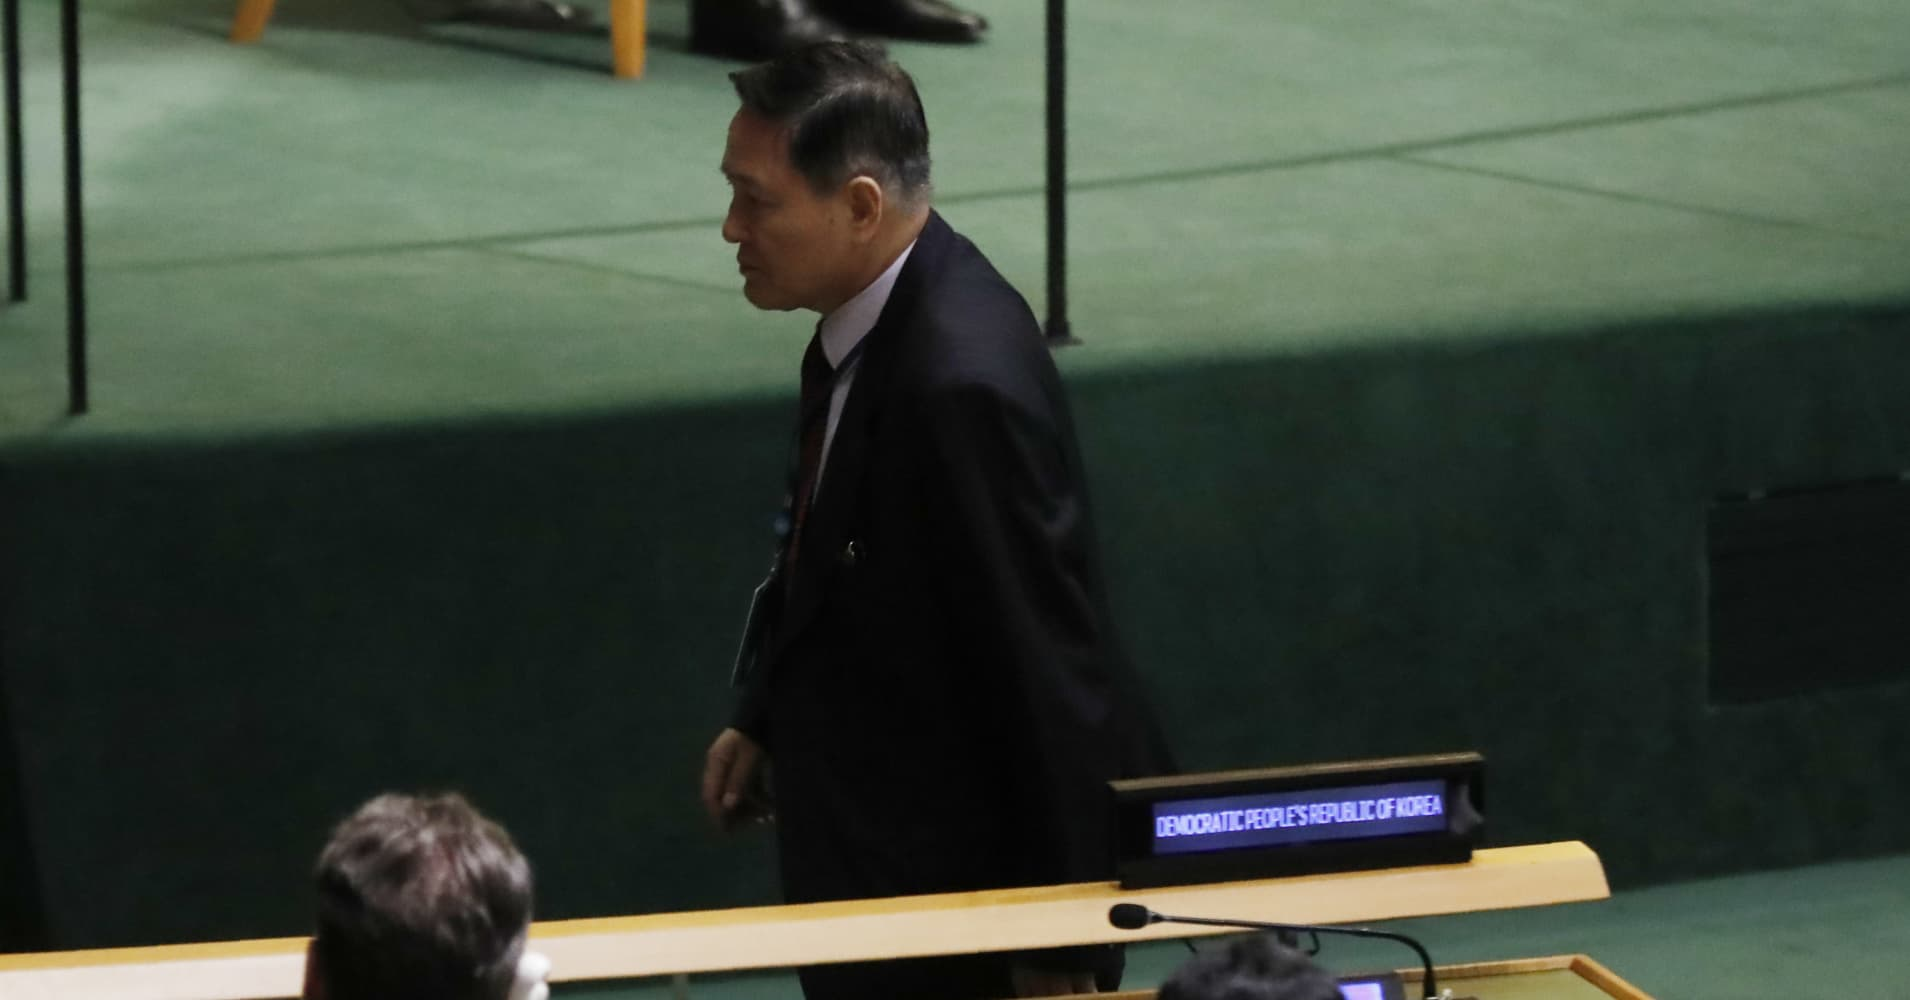 North Korea ambassador walked out of UN assembly in boycott of Trump's speech